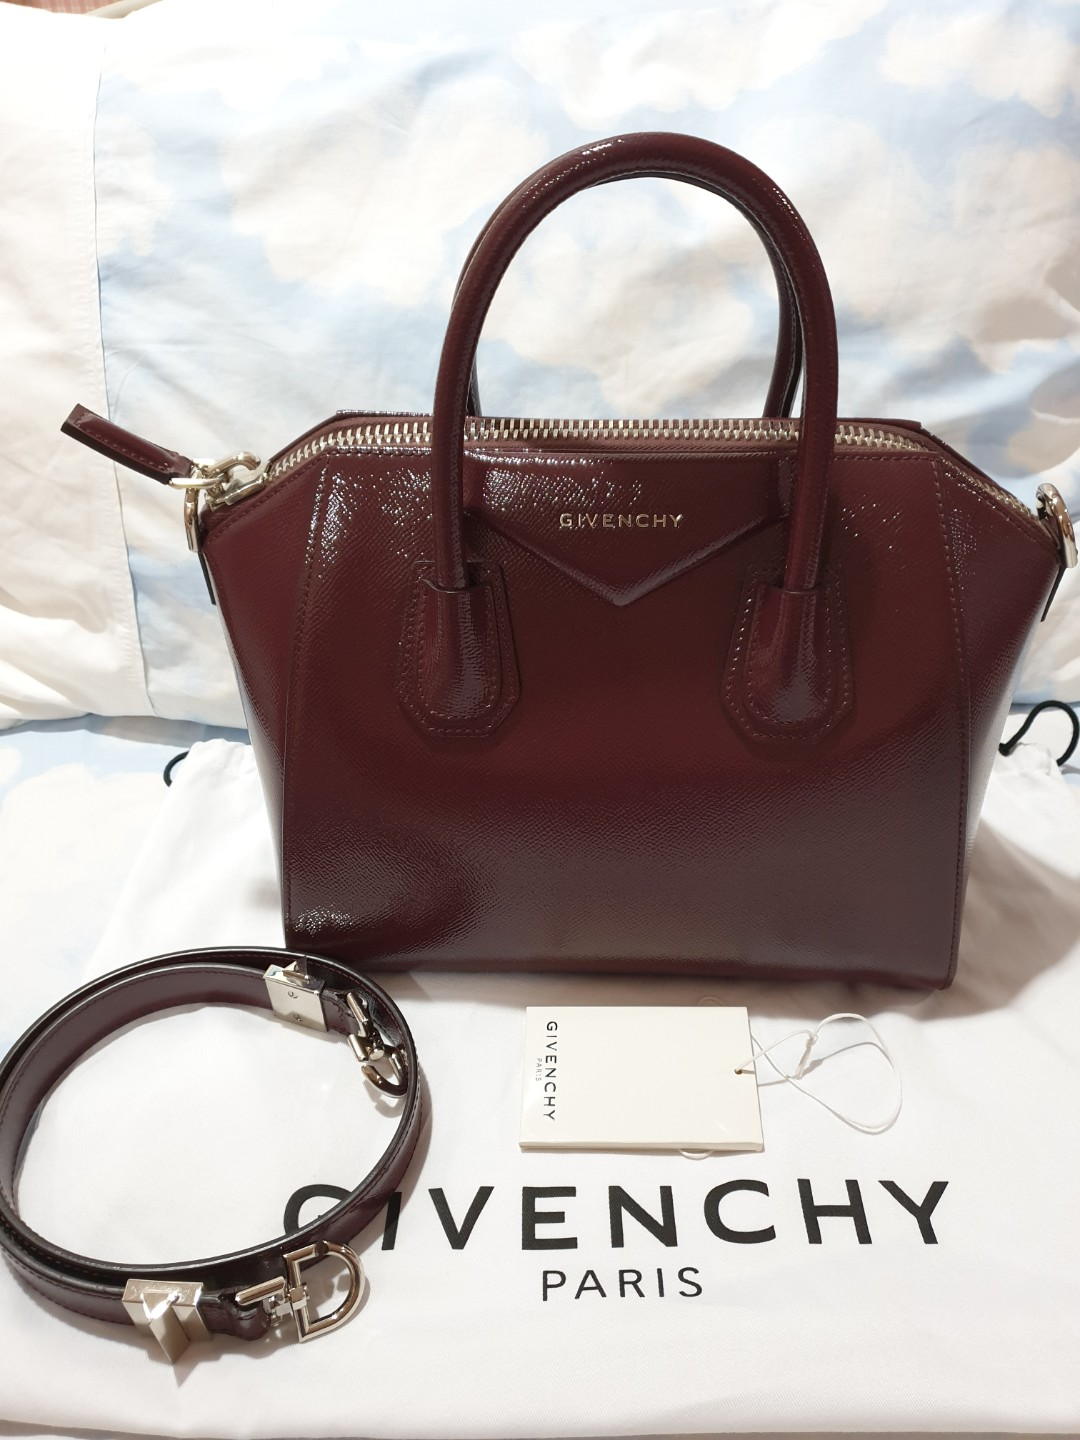 Givenchy Antigona Small in Oxblood patent leather d9910b3a9c1f9